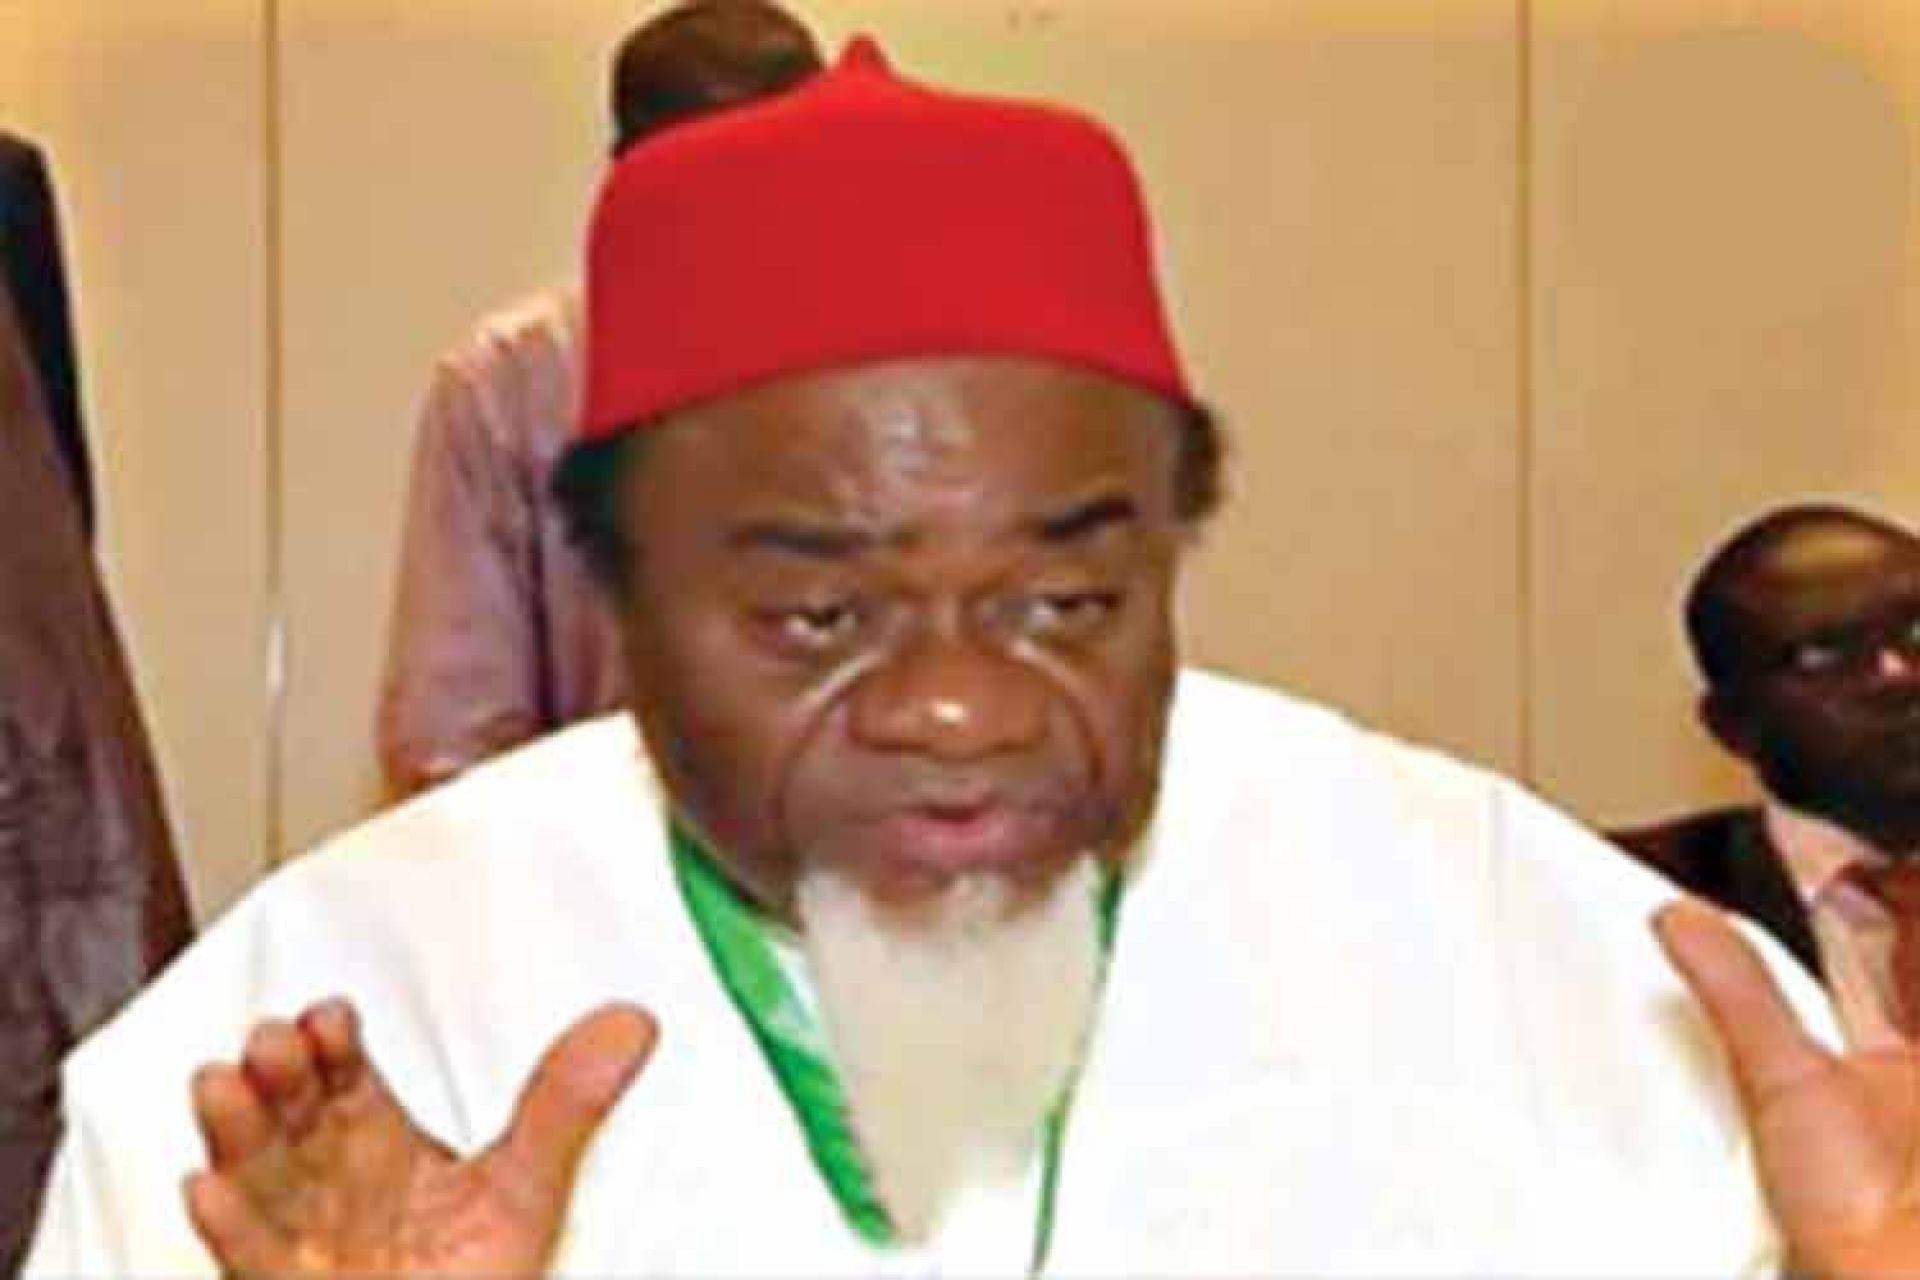 Ex-gov Ezeife urges INEC to conduct credible polls in 2019